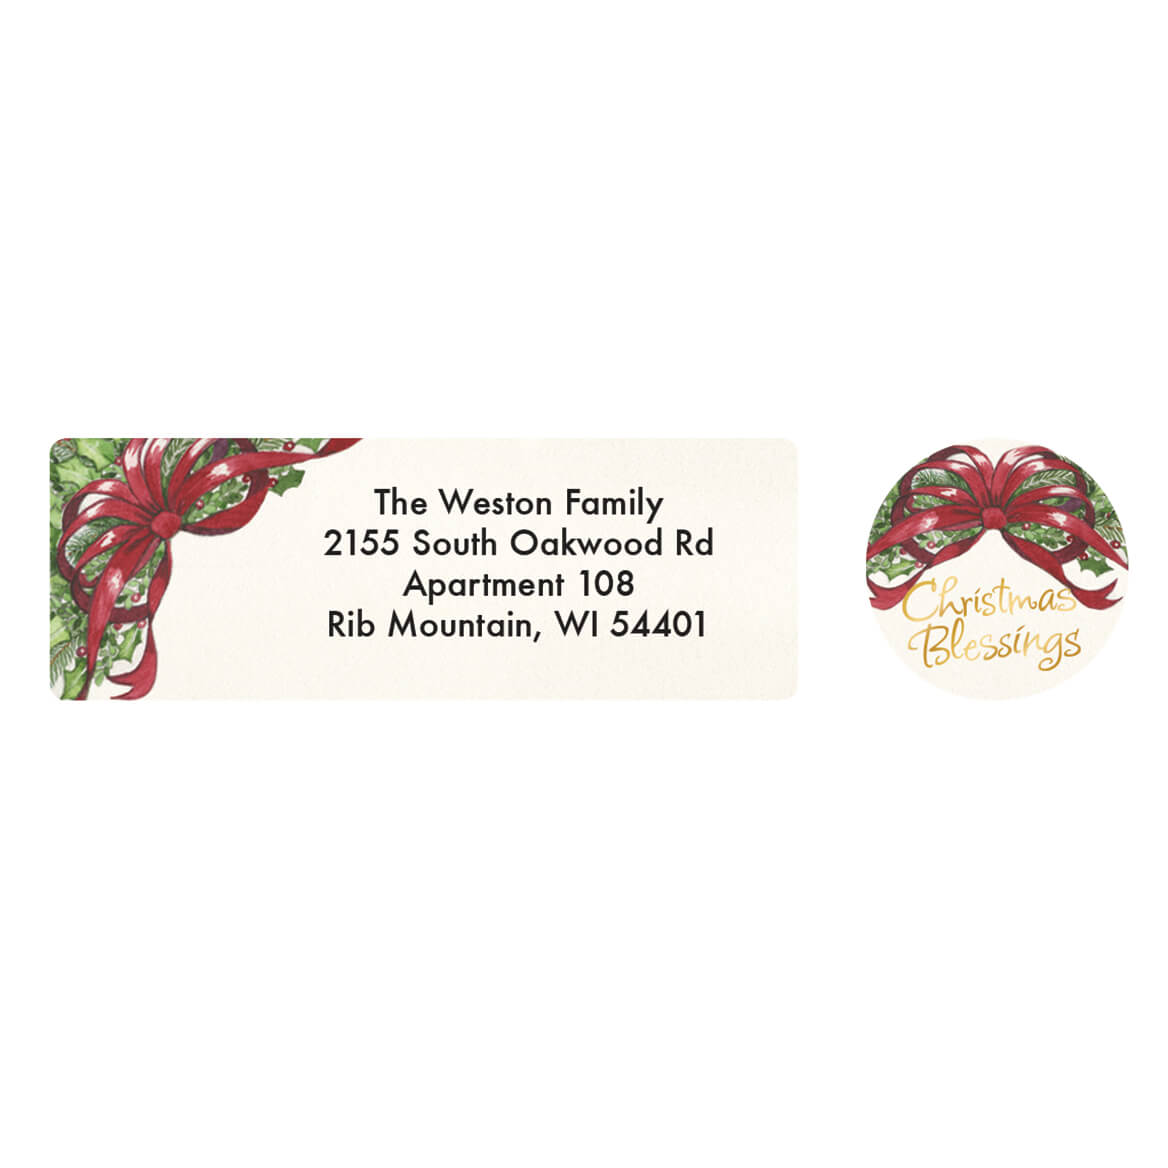 Personalized Christmas Blessings Address Labels & Seals 20-364709